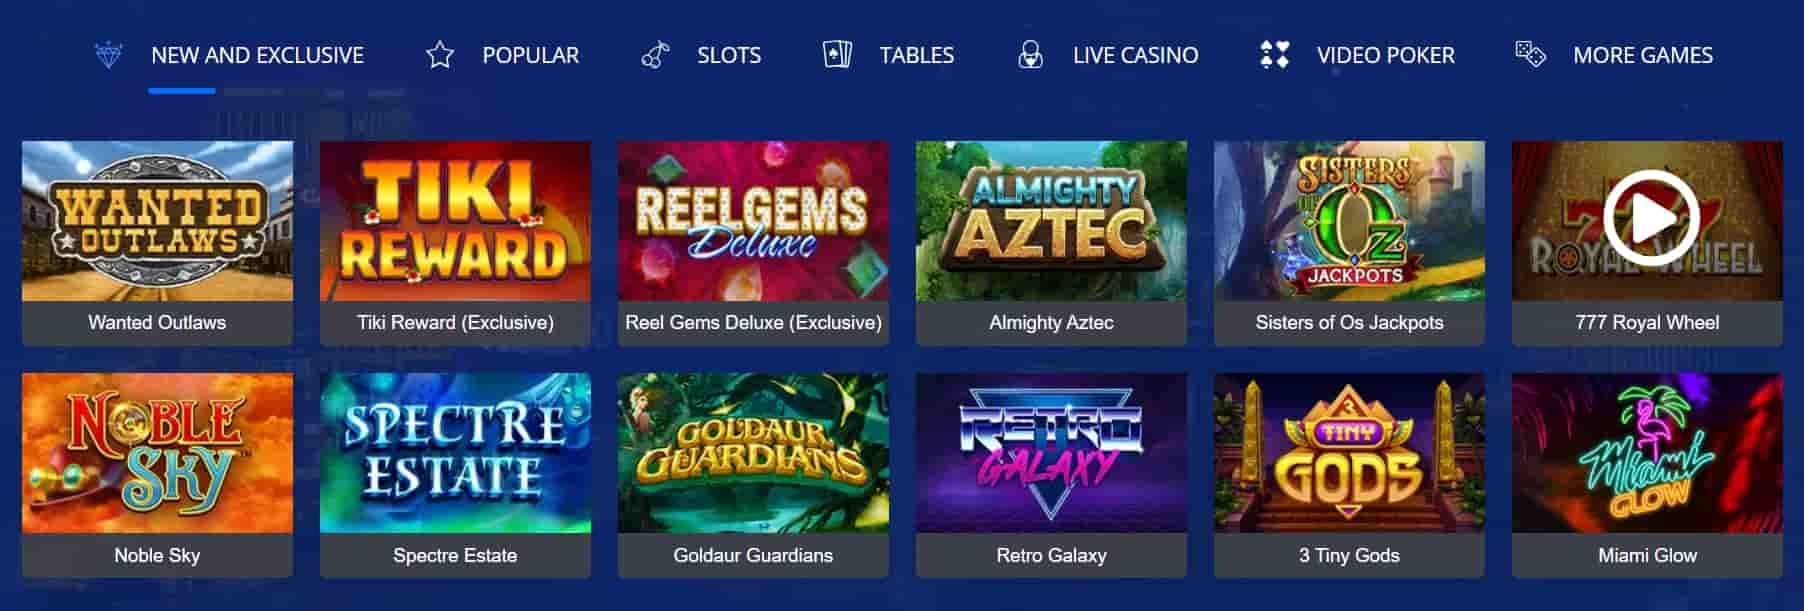 allslots casino games